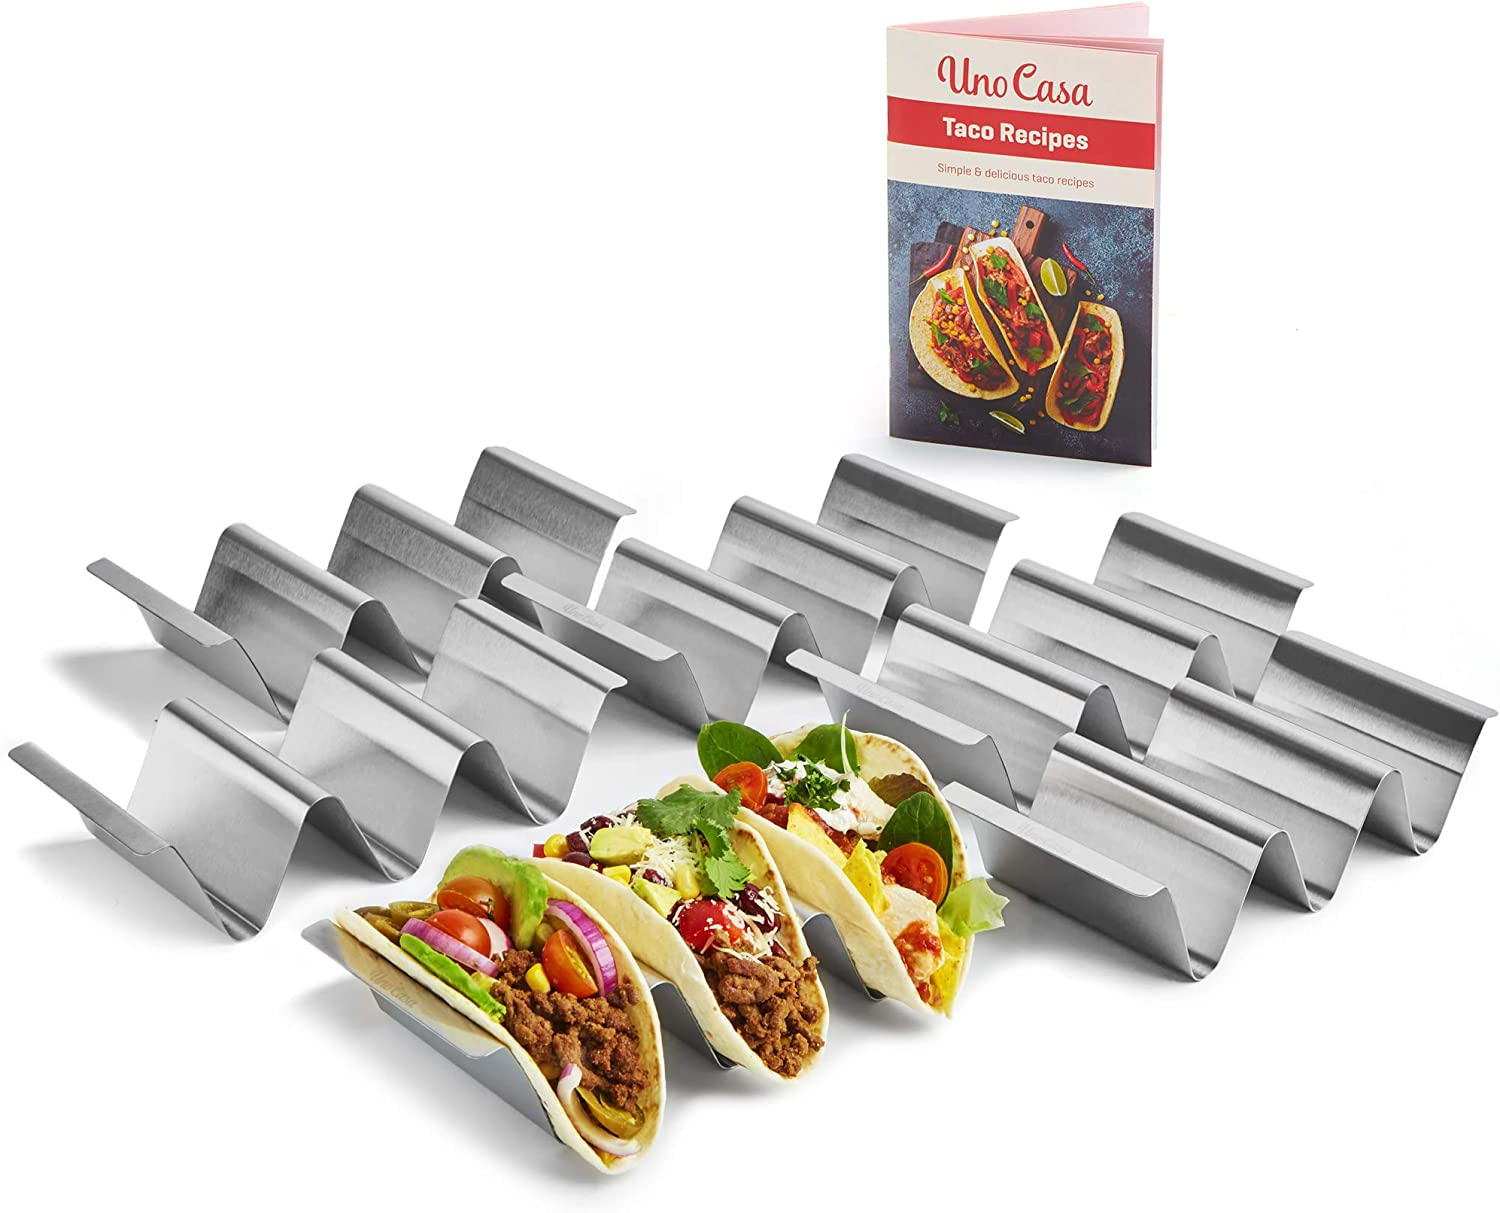 Uno Casa Taco Holders set of 6 - Metal Taco Holder for Taco Shells, Durable Taco Stand for Taco Tuesday or as a Taco Shell Mold - U-Shaped Taco Rack and Recipe Book